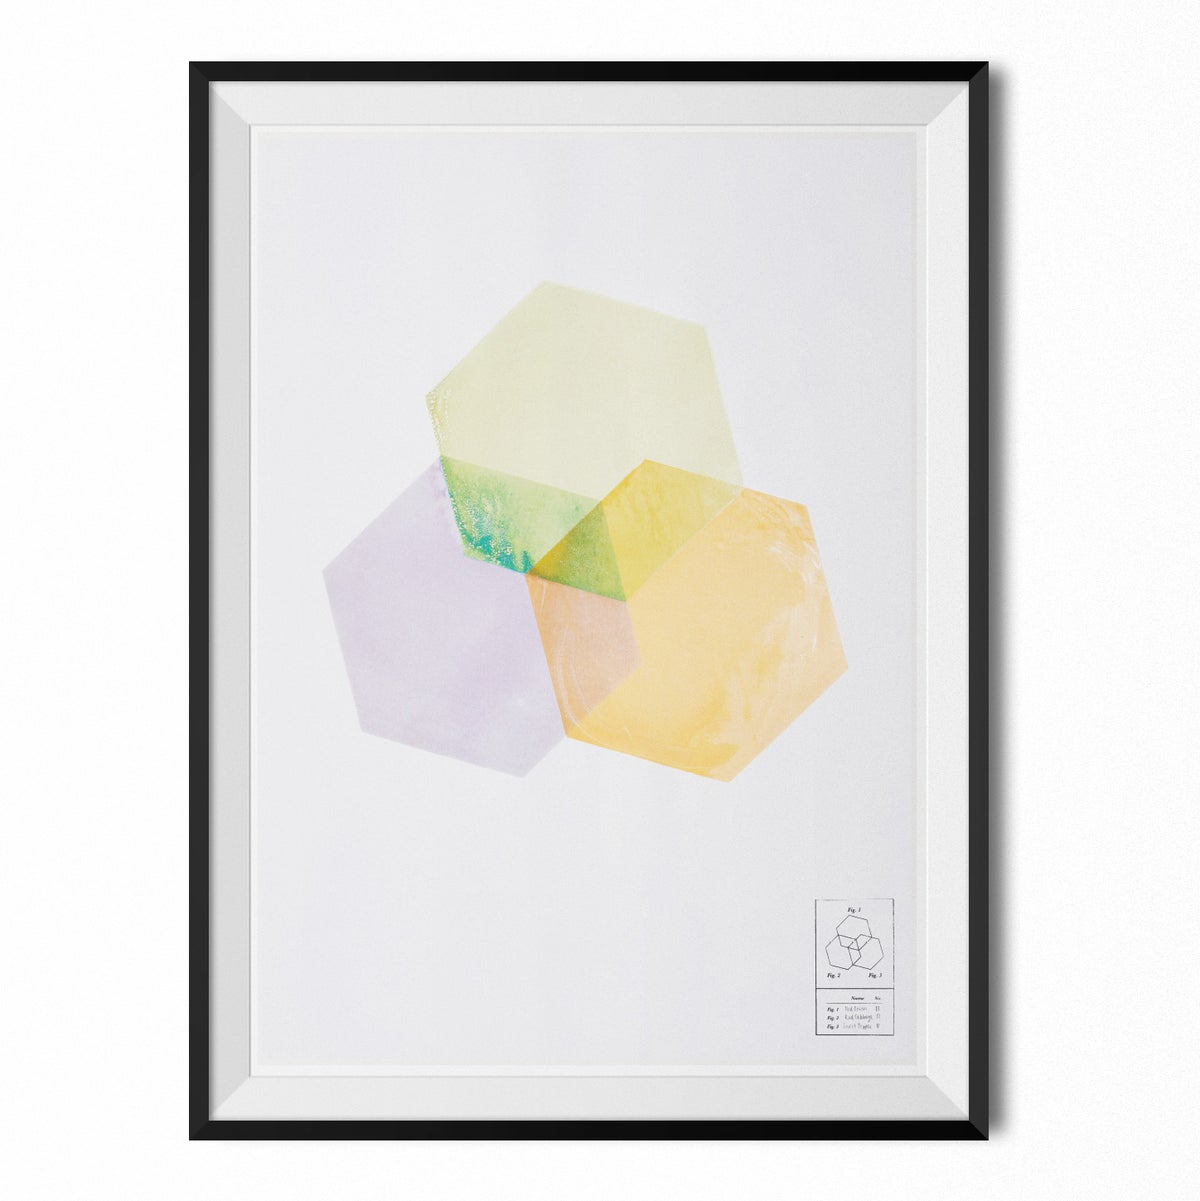 Image of Poster - Hexagon shapes #2 (70x100 cm)